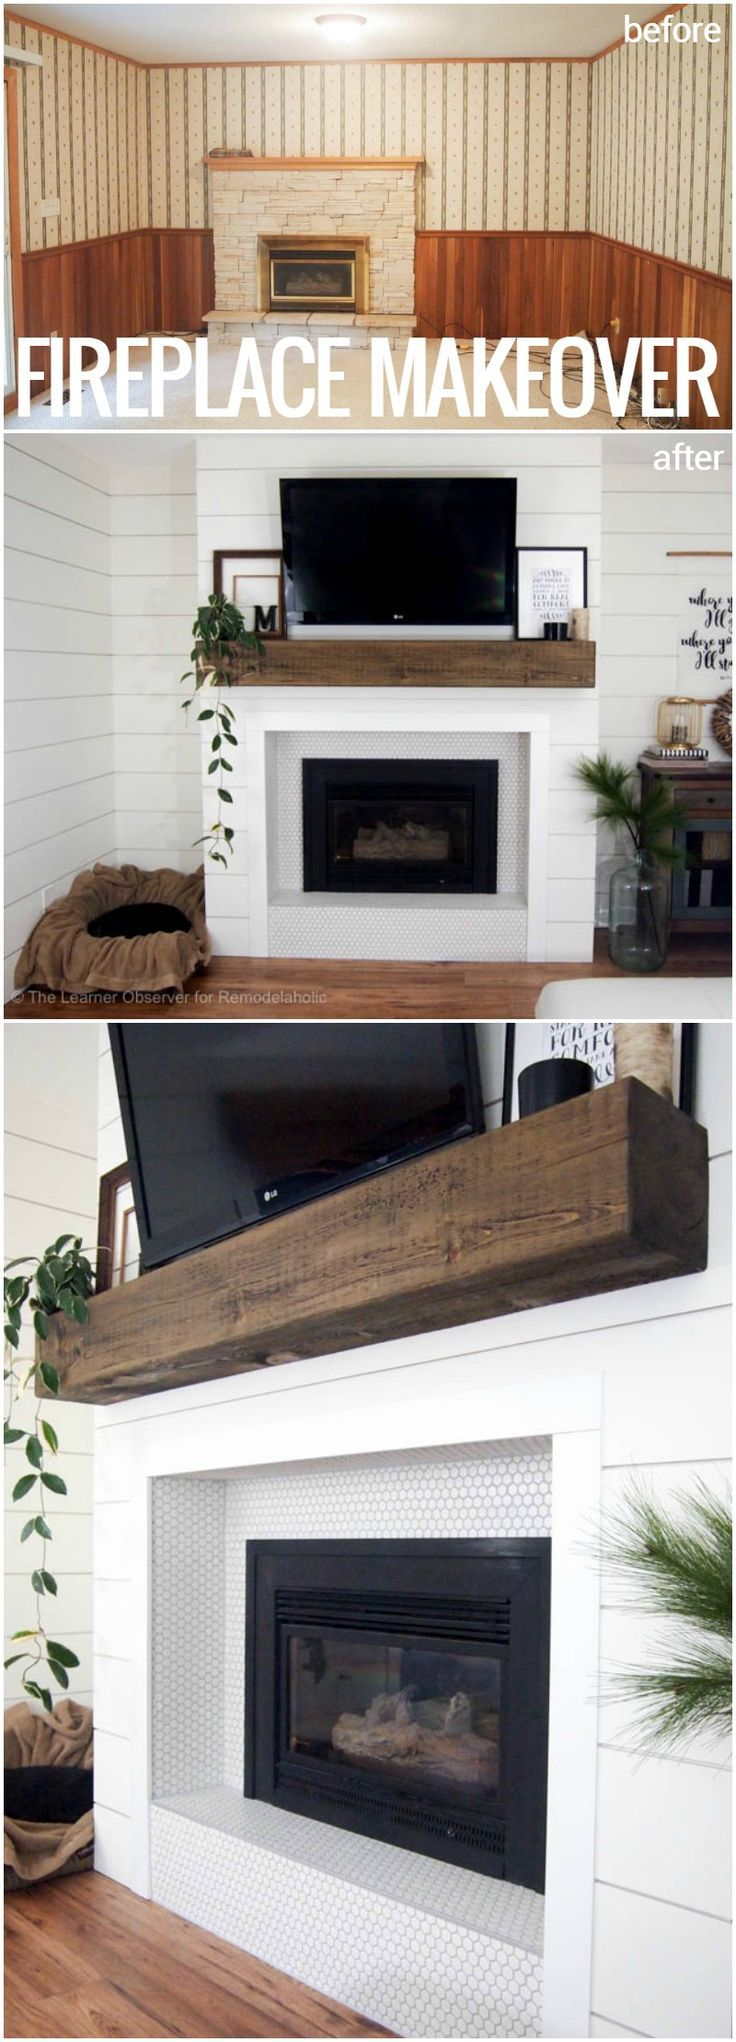 0985d33c38f580ea546c575115c09ca9 diy shiplap fireplace fireplace update best 25 oakwood f c ideas on pinterest pressed metal  at readyjetset.co